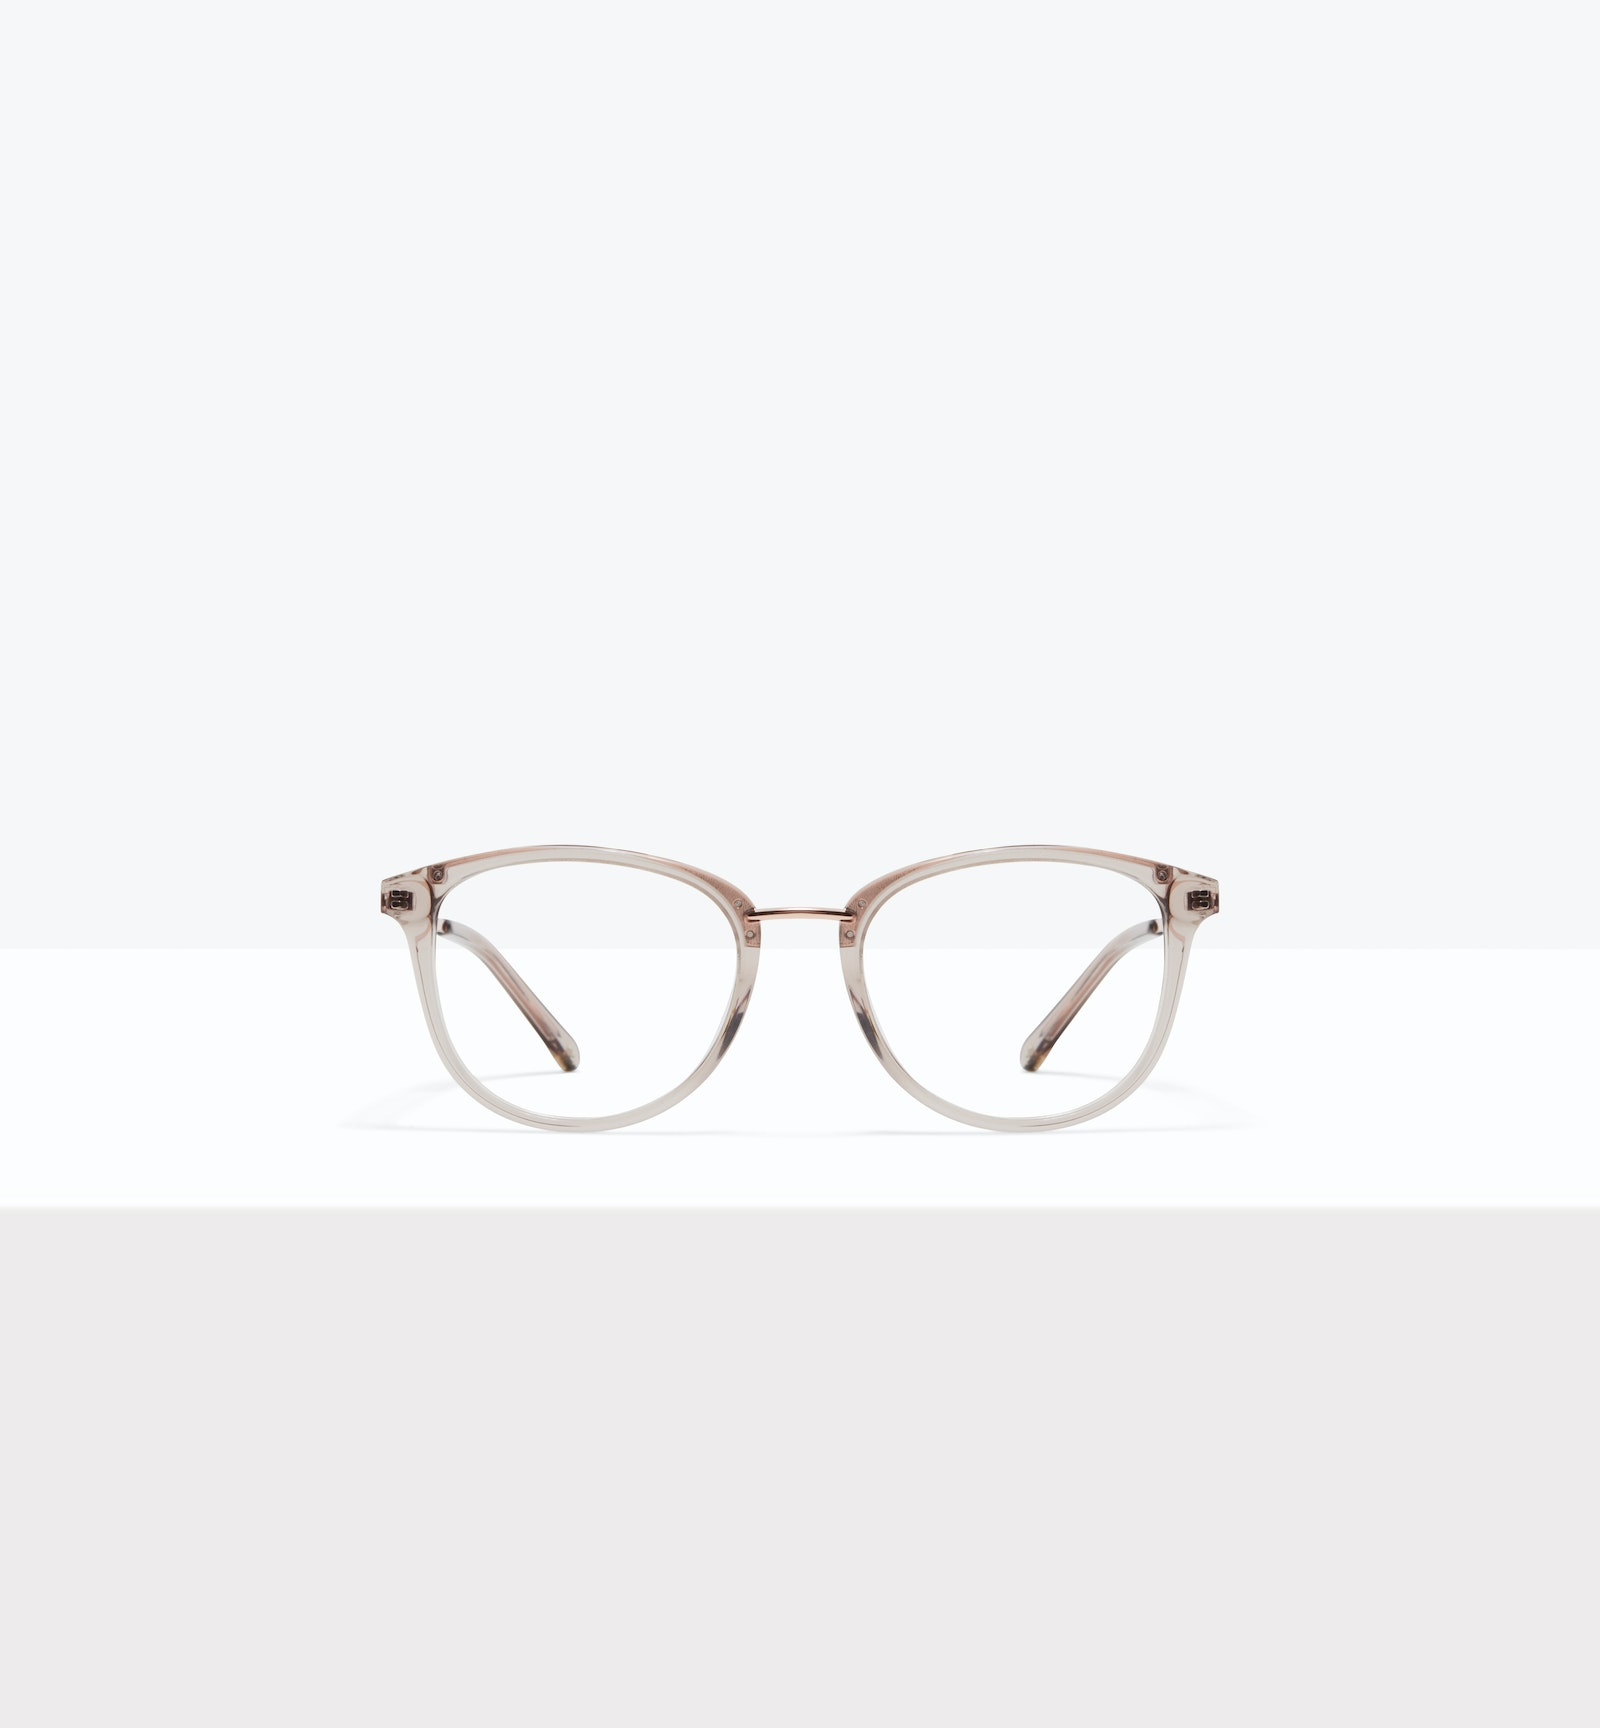 Affordable Fashion Glasses Square Round Eyeglasses Women Bella XS Sand